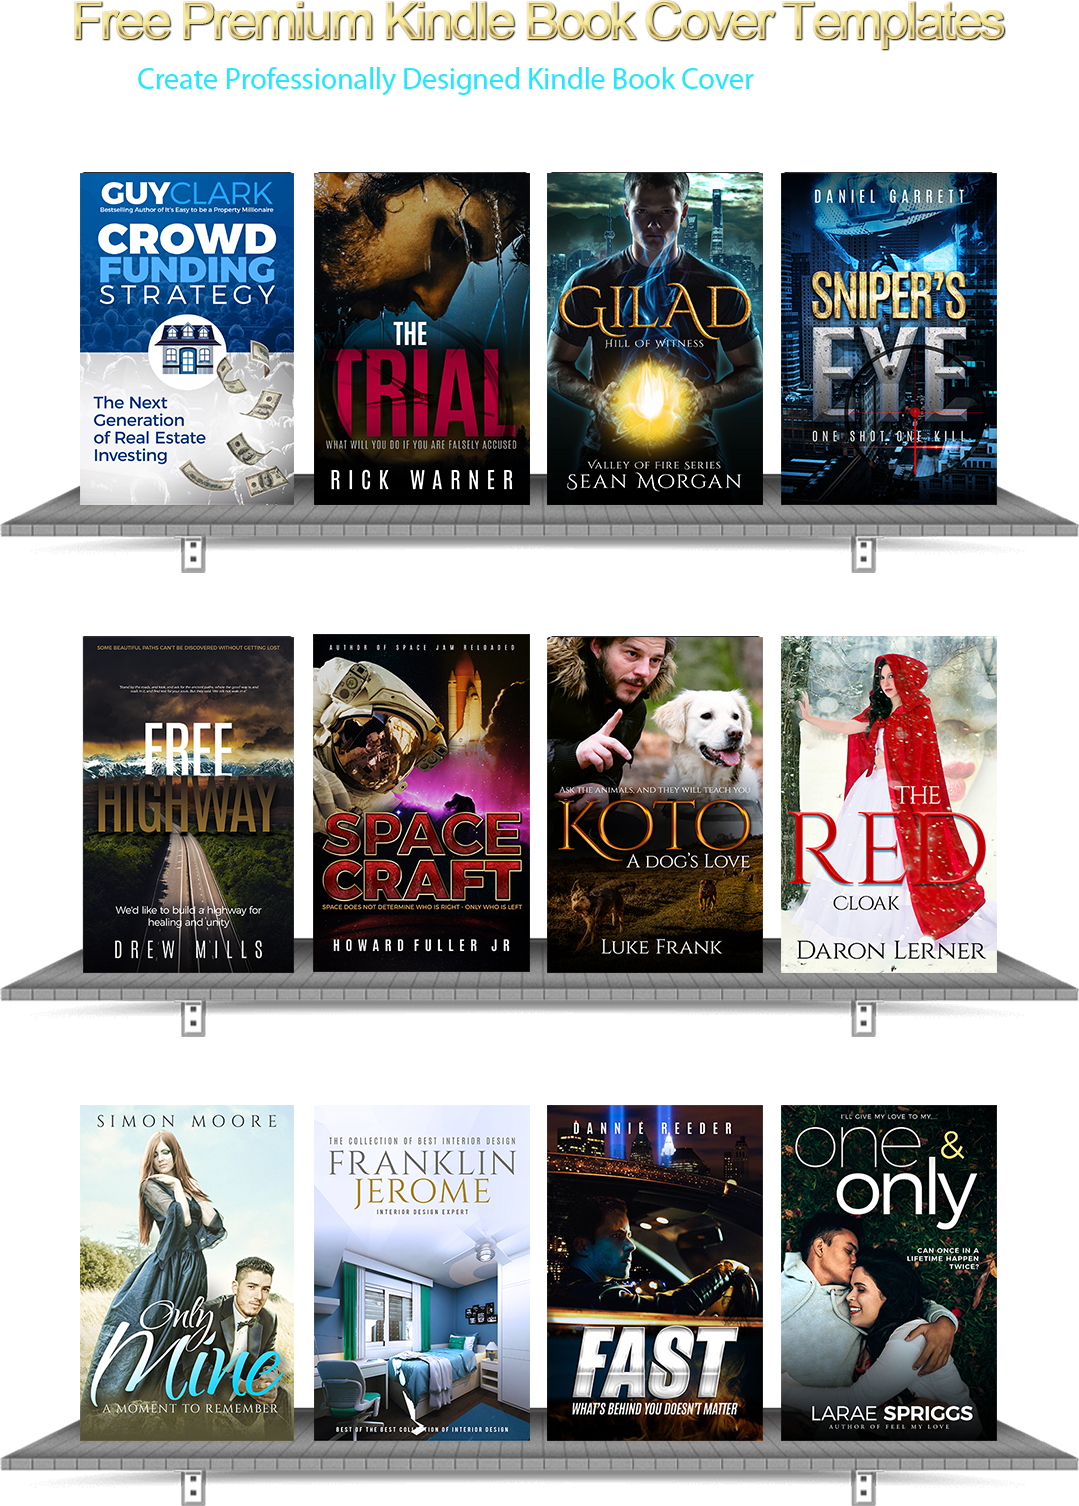 kindlespy-cover-templates-01